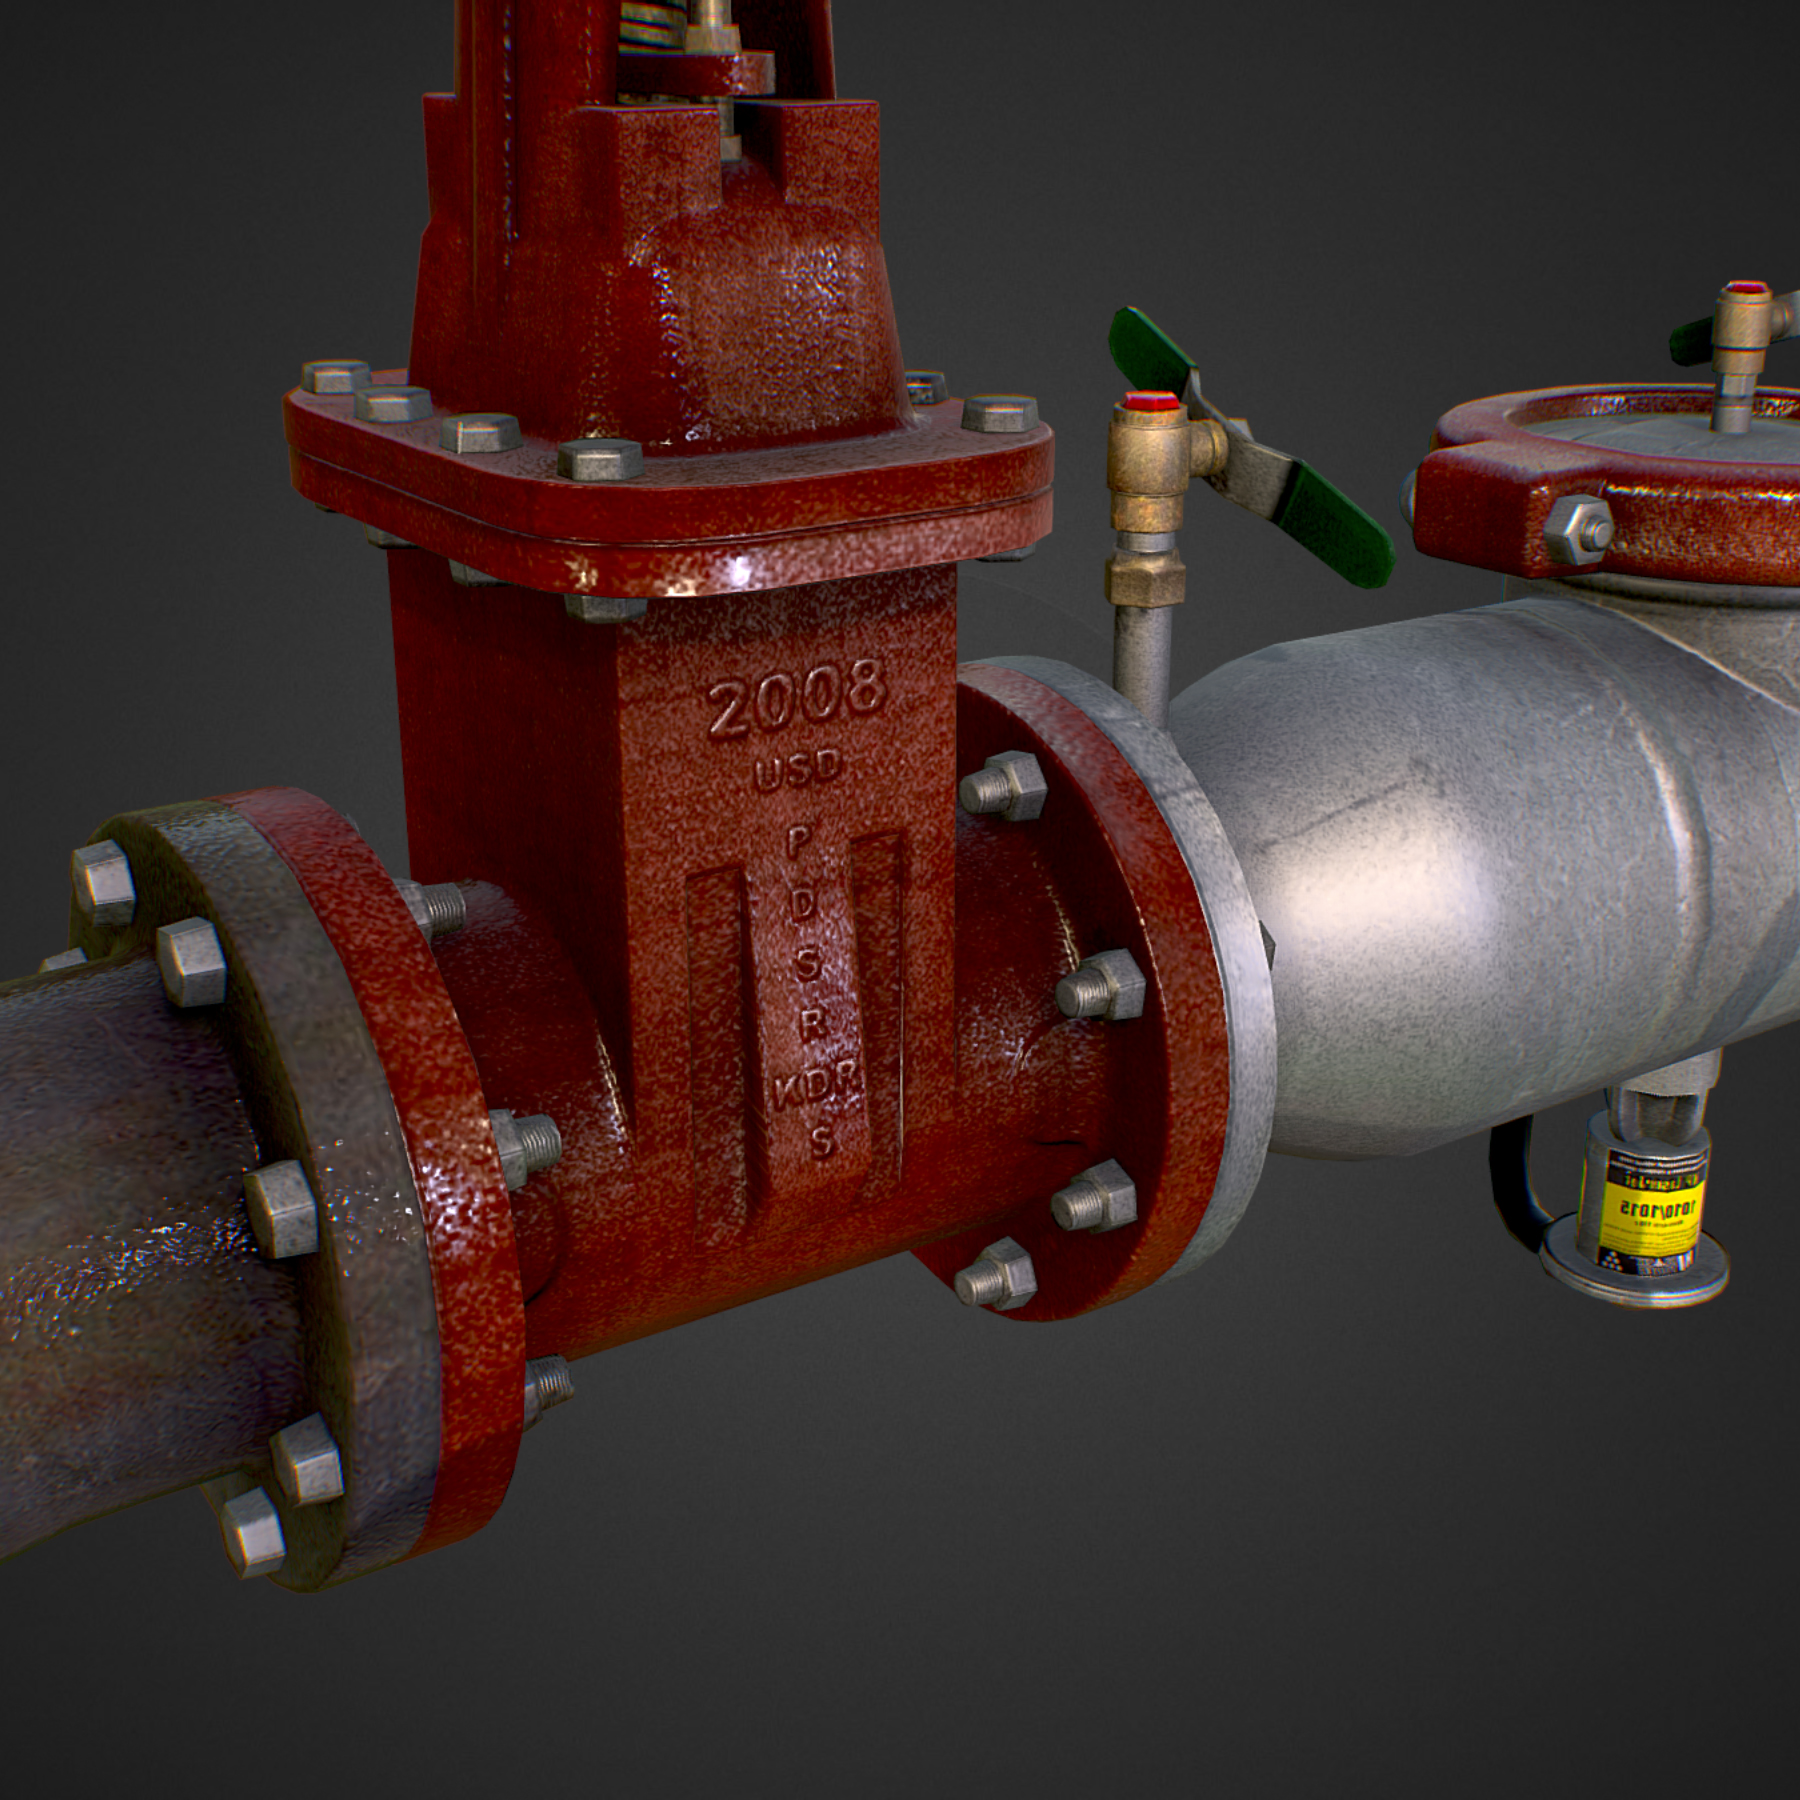 low poly game backflow water pipe constructor 3d model max  fbx ma mb tga targa icb vda vst pix obj 272476